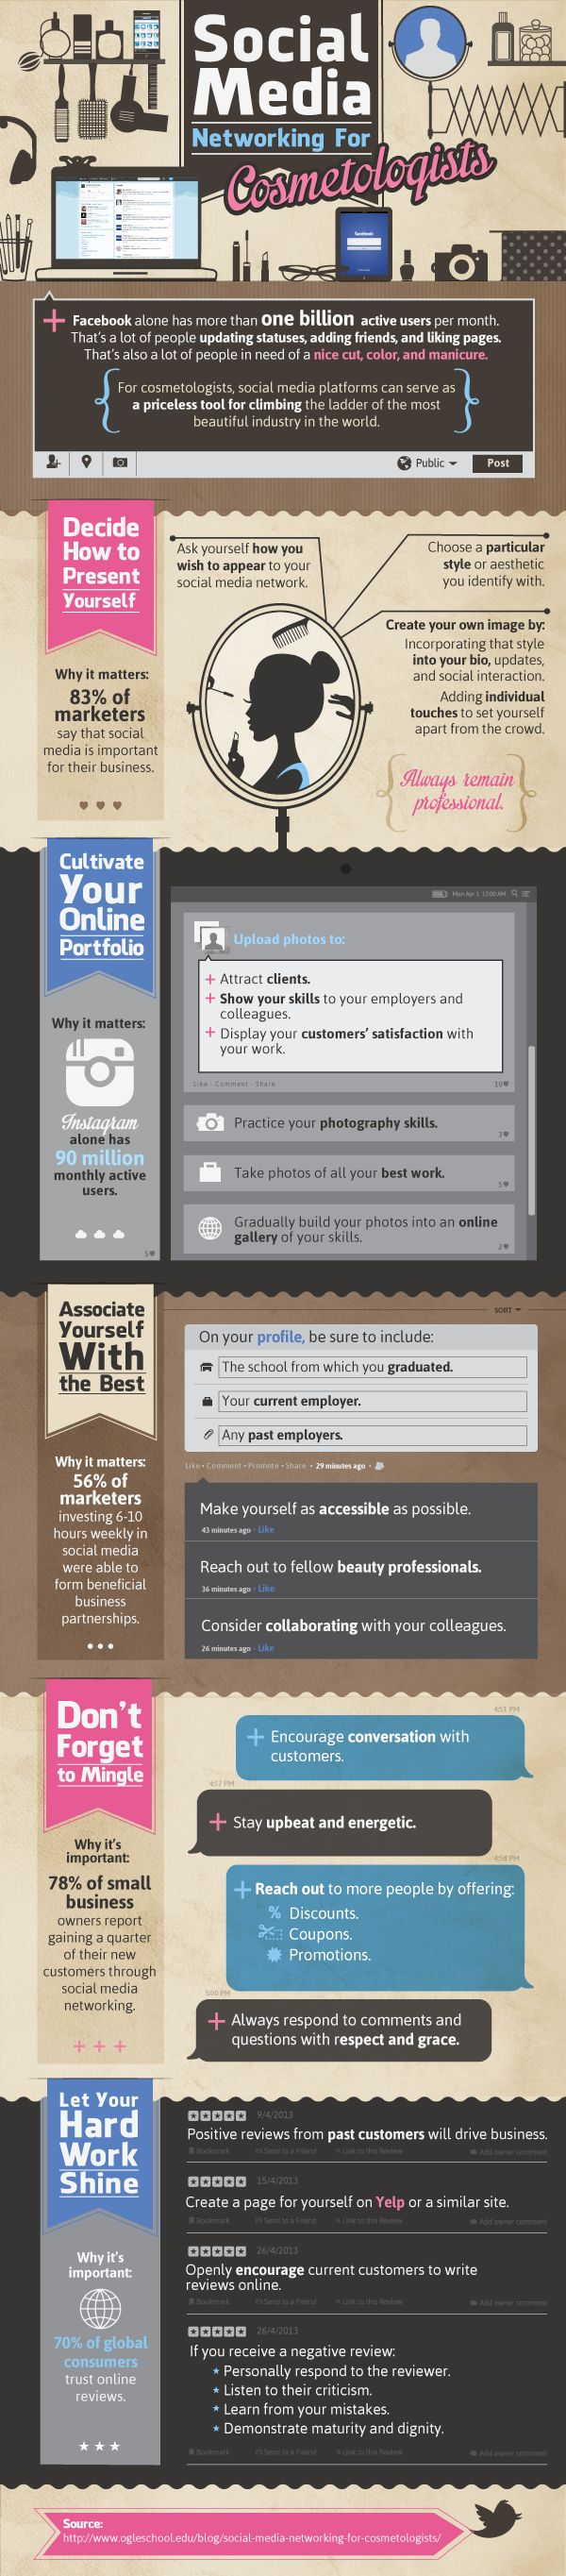 Social Media Networking for Cosmetologists #infographic #socialmedia